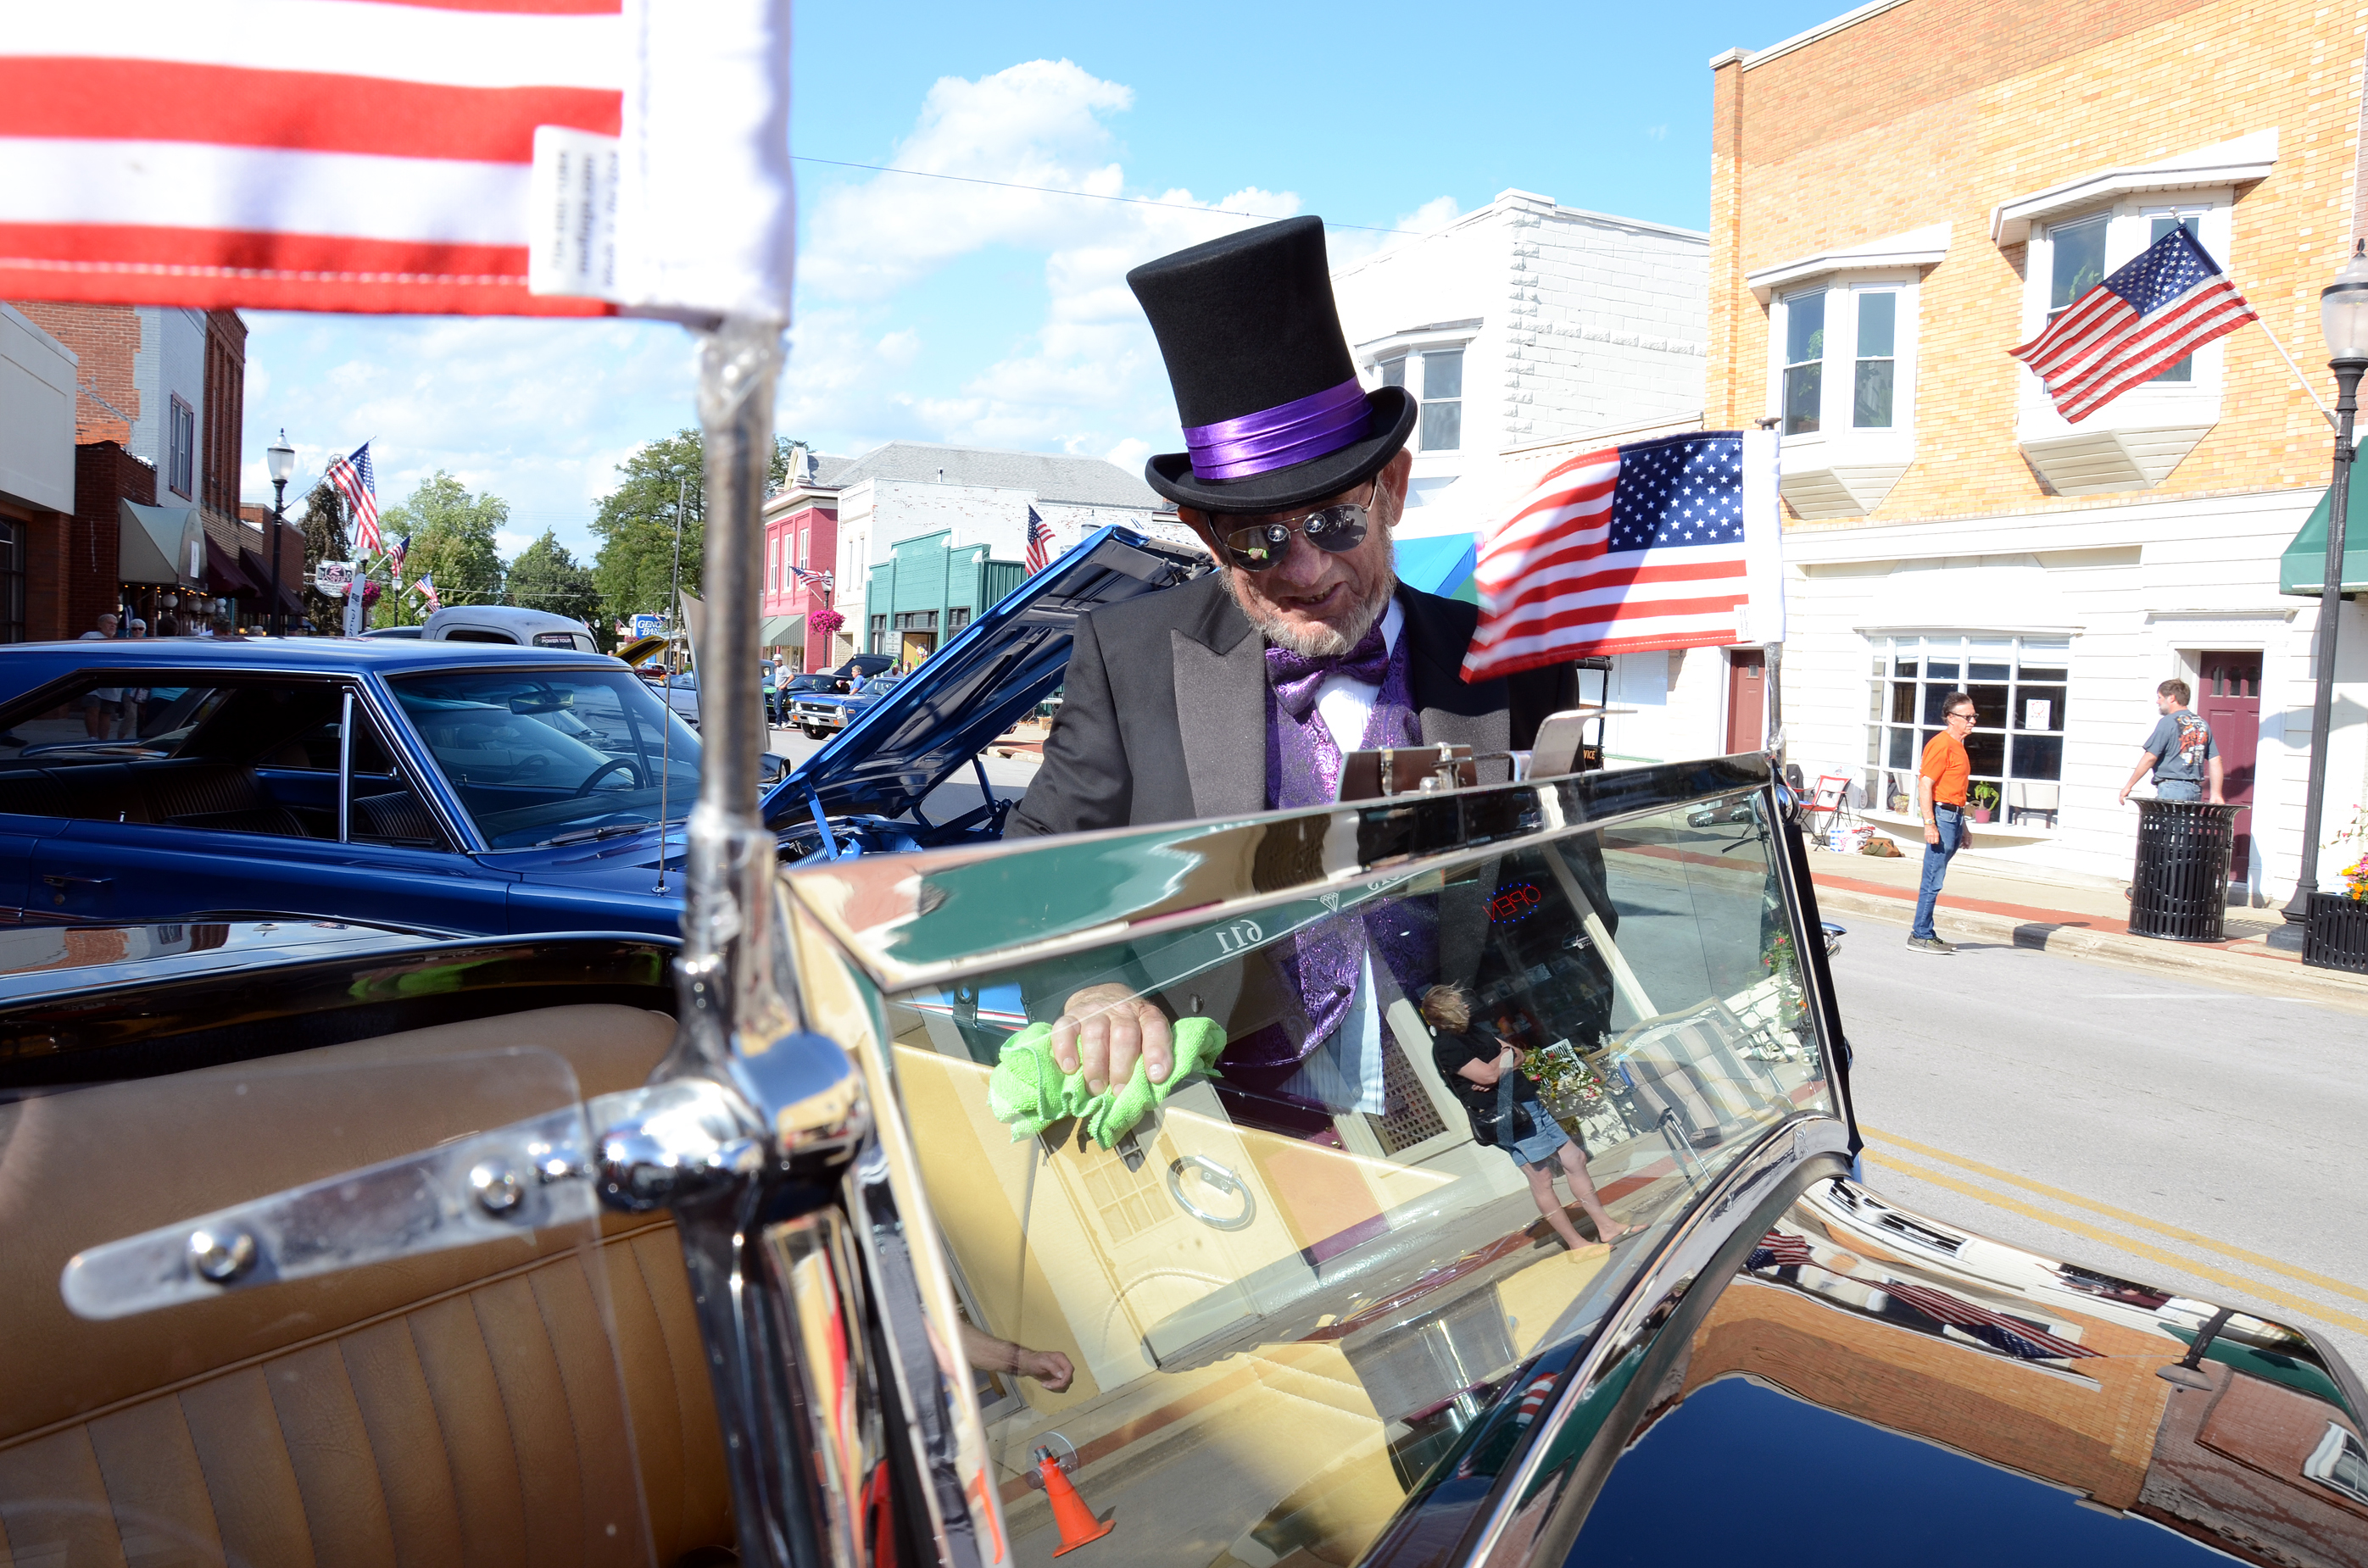 Decked out in top hat and tux, Dave Bertok, Genoa, polishes his 1932 Ford Roadster as cars begin to roll-in for Genoa's Super Cruise-In Car Show. (Press photo by Ken Grosjean)